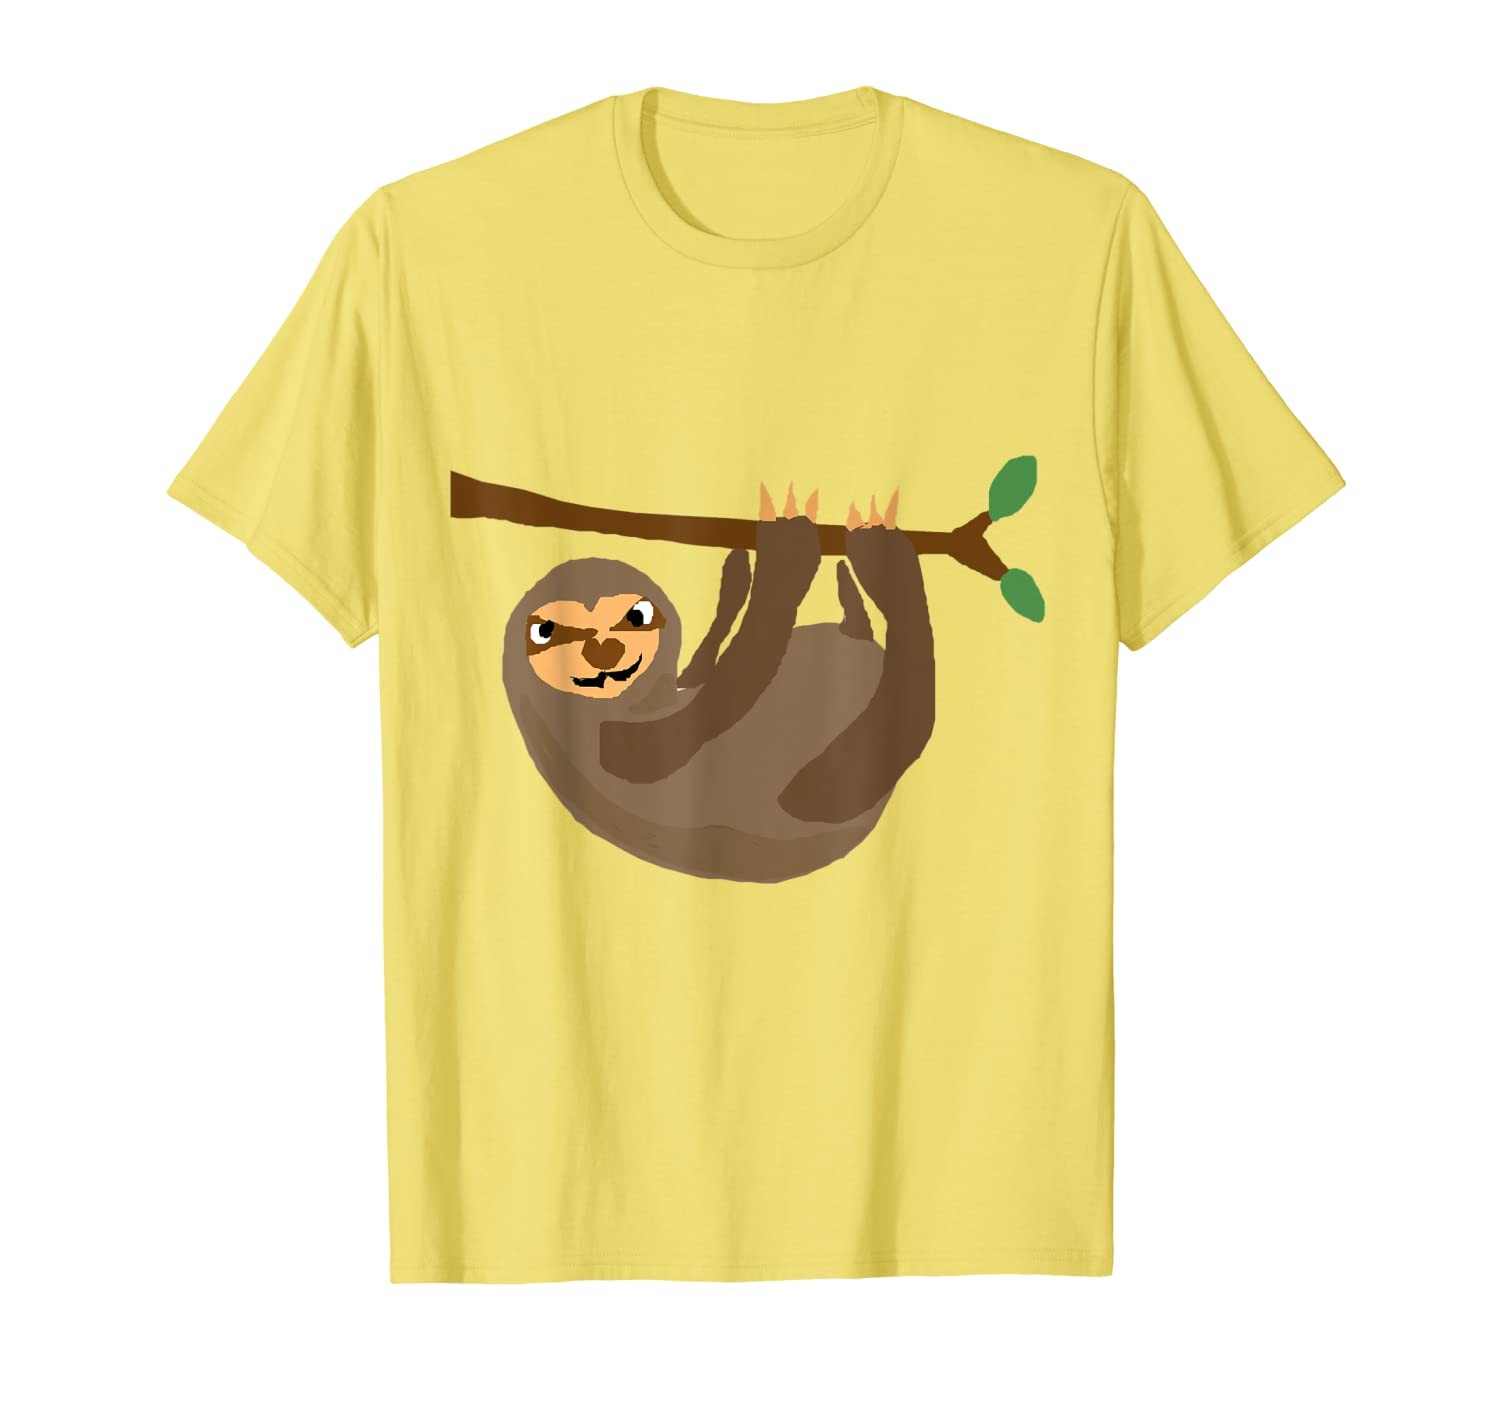 Smilealottees Funny Sloth Hanging from Tree Art T-Shirt-Yolotee